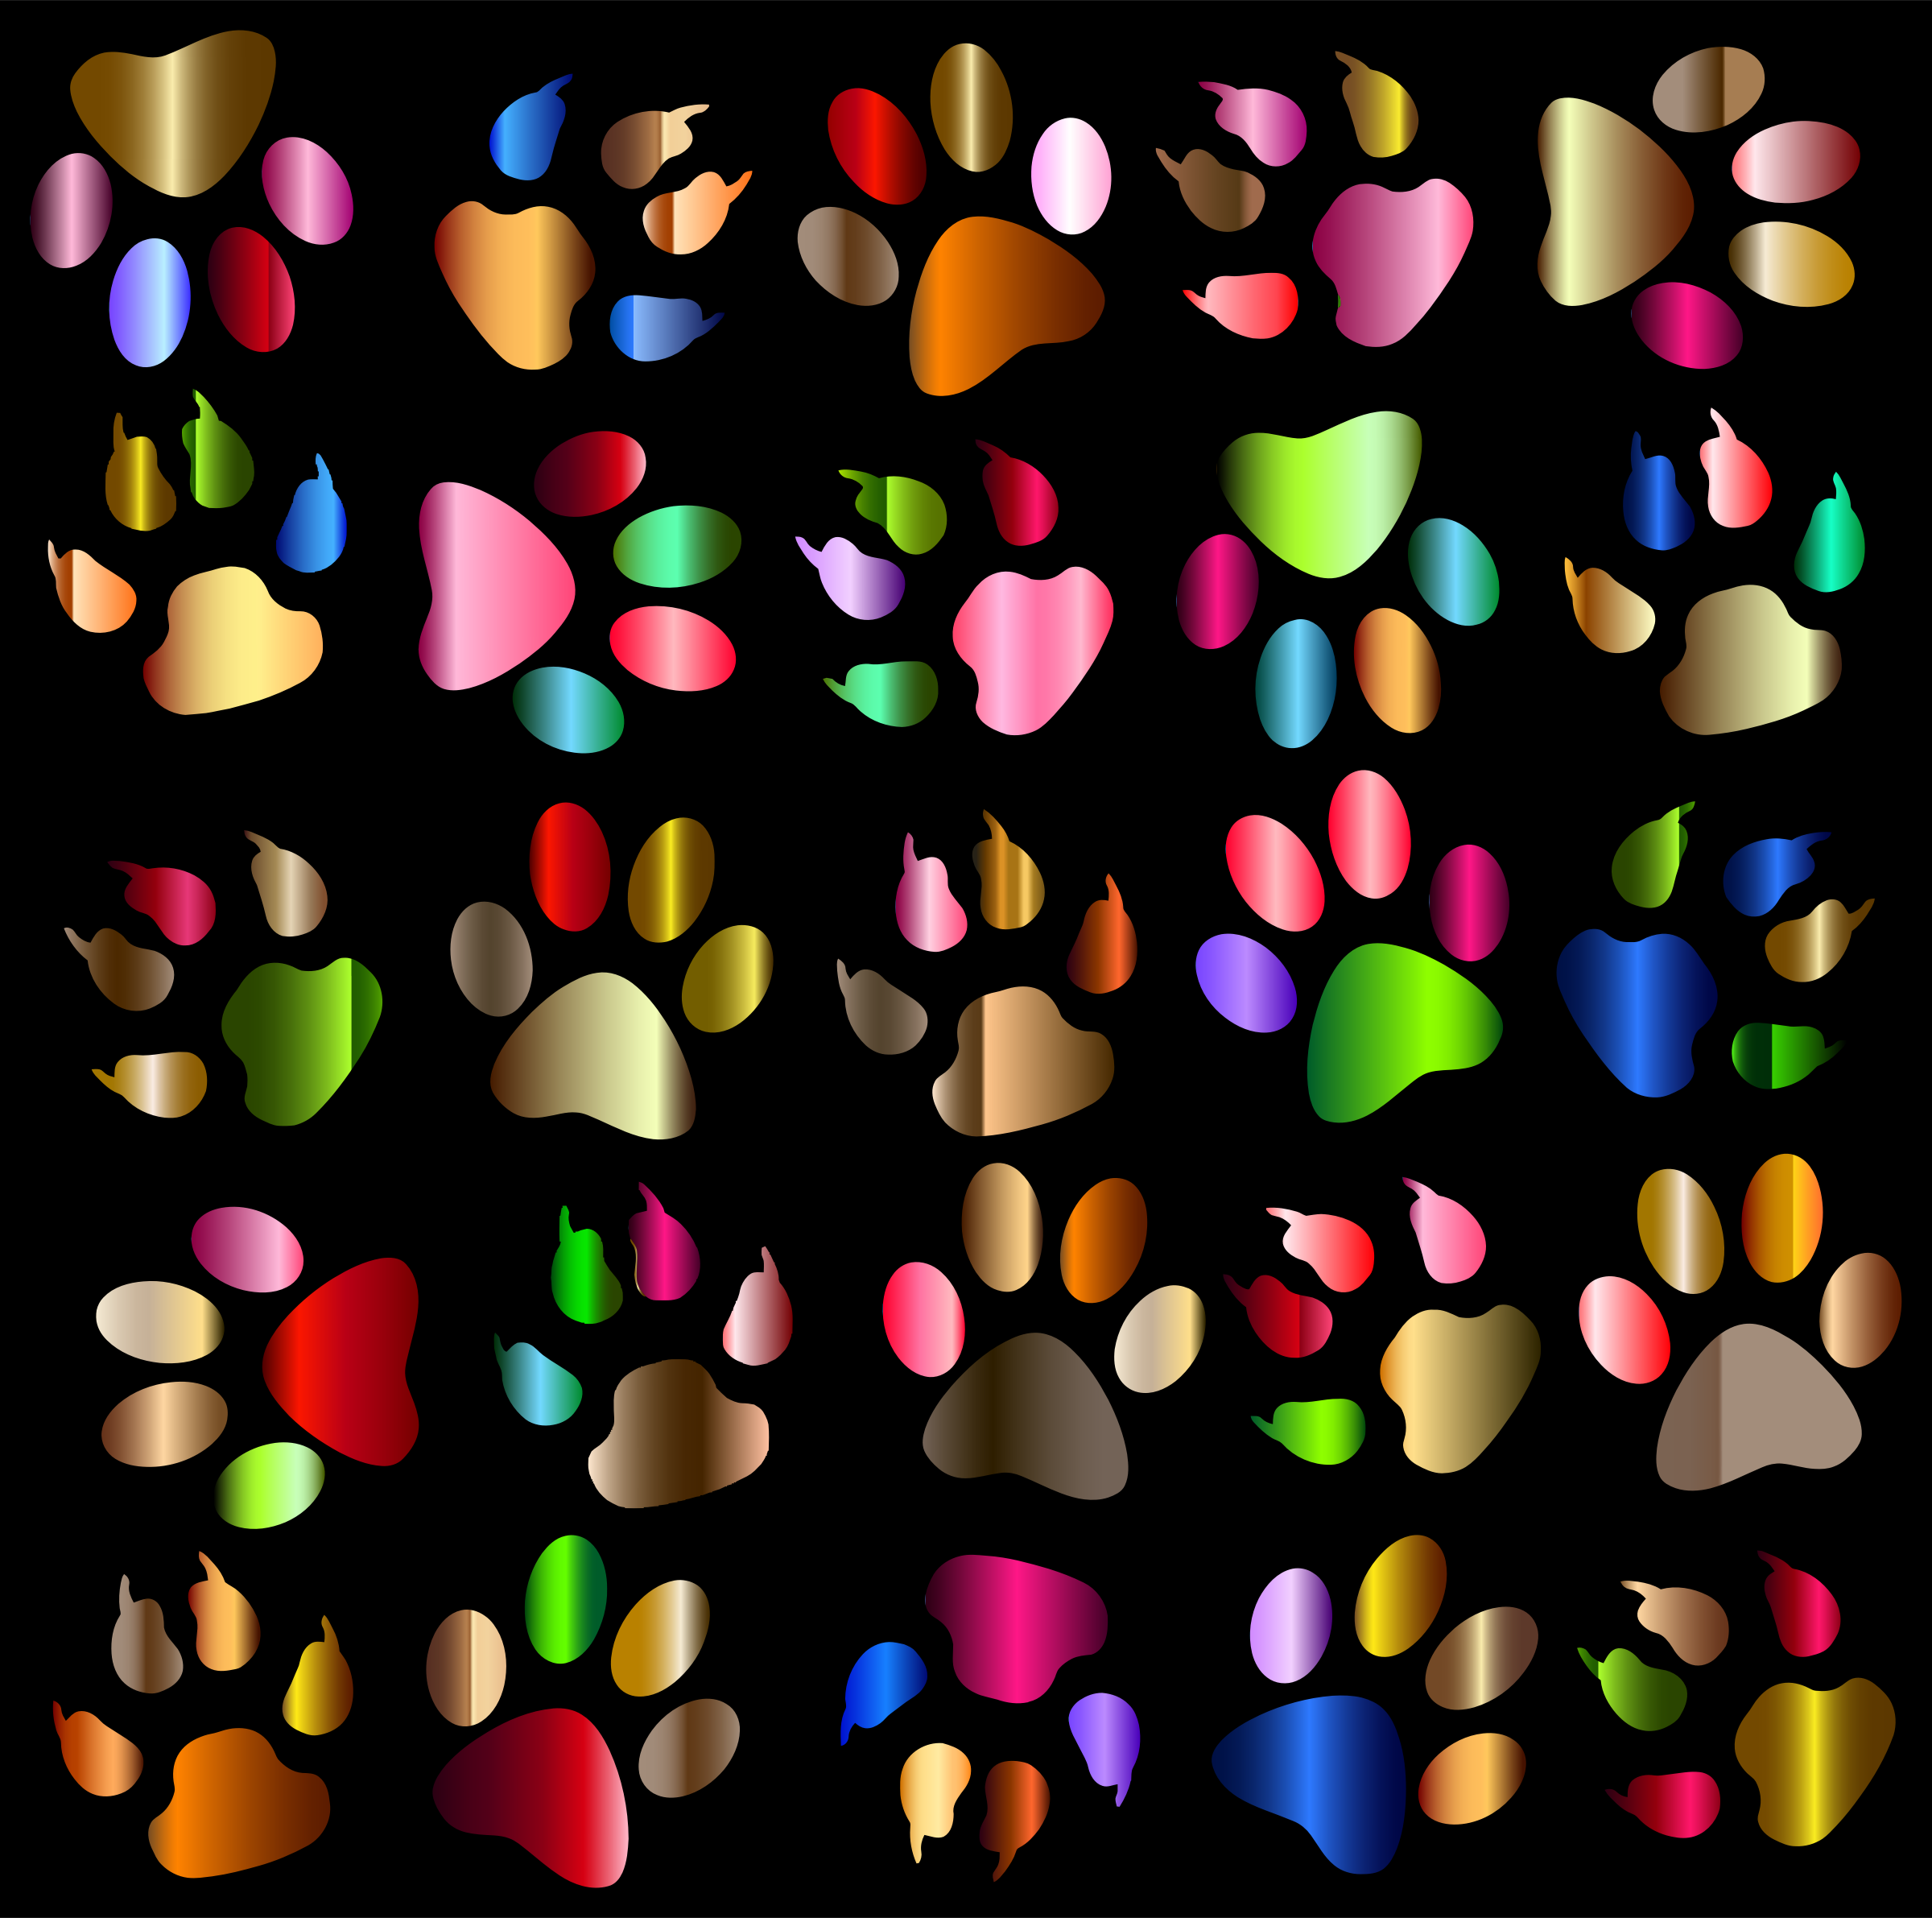 Colorful Paw Prints Pattern Background Reinvigorated by GDJ